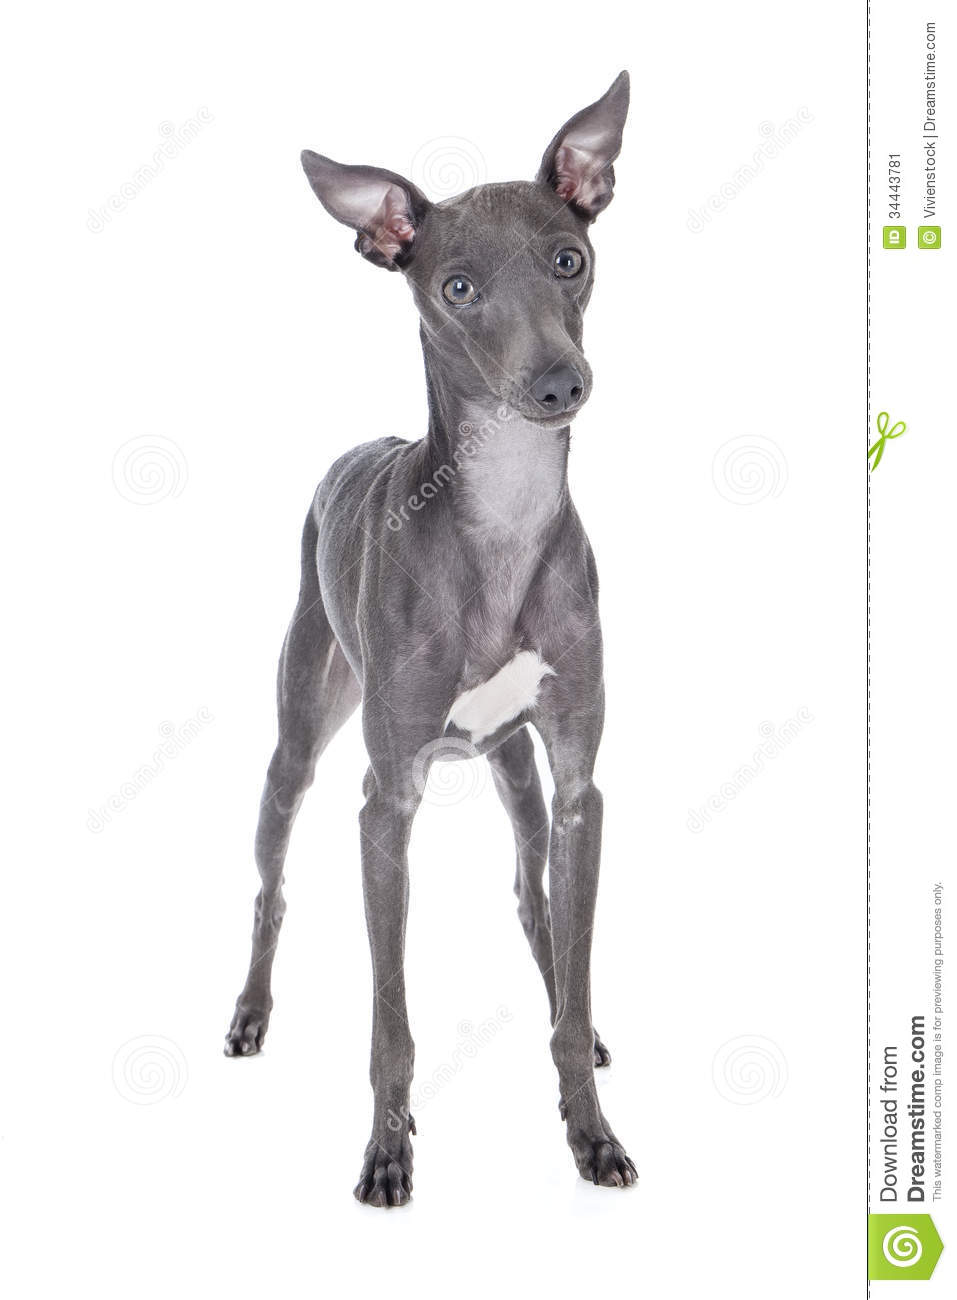 Italian Greyhound Blue Color Stock Image - Image: 34443781